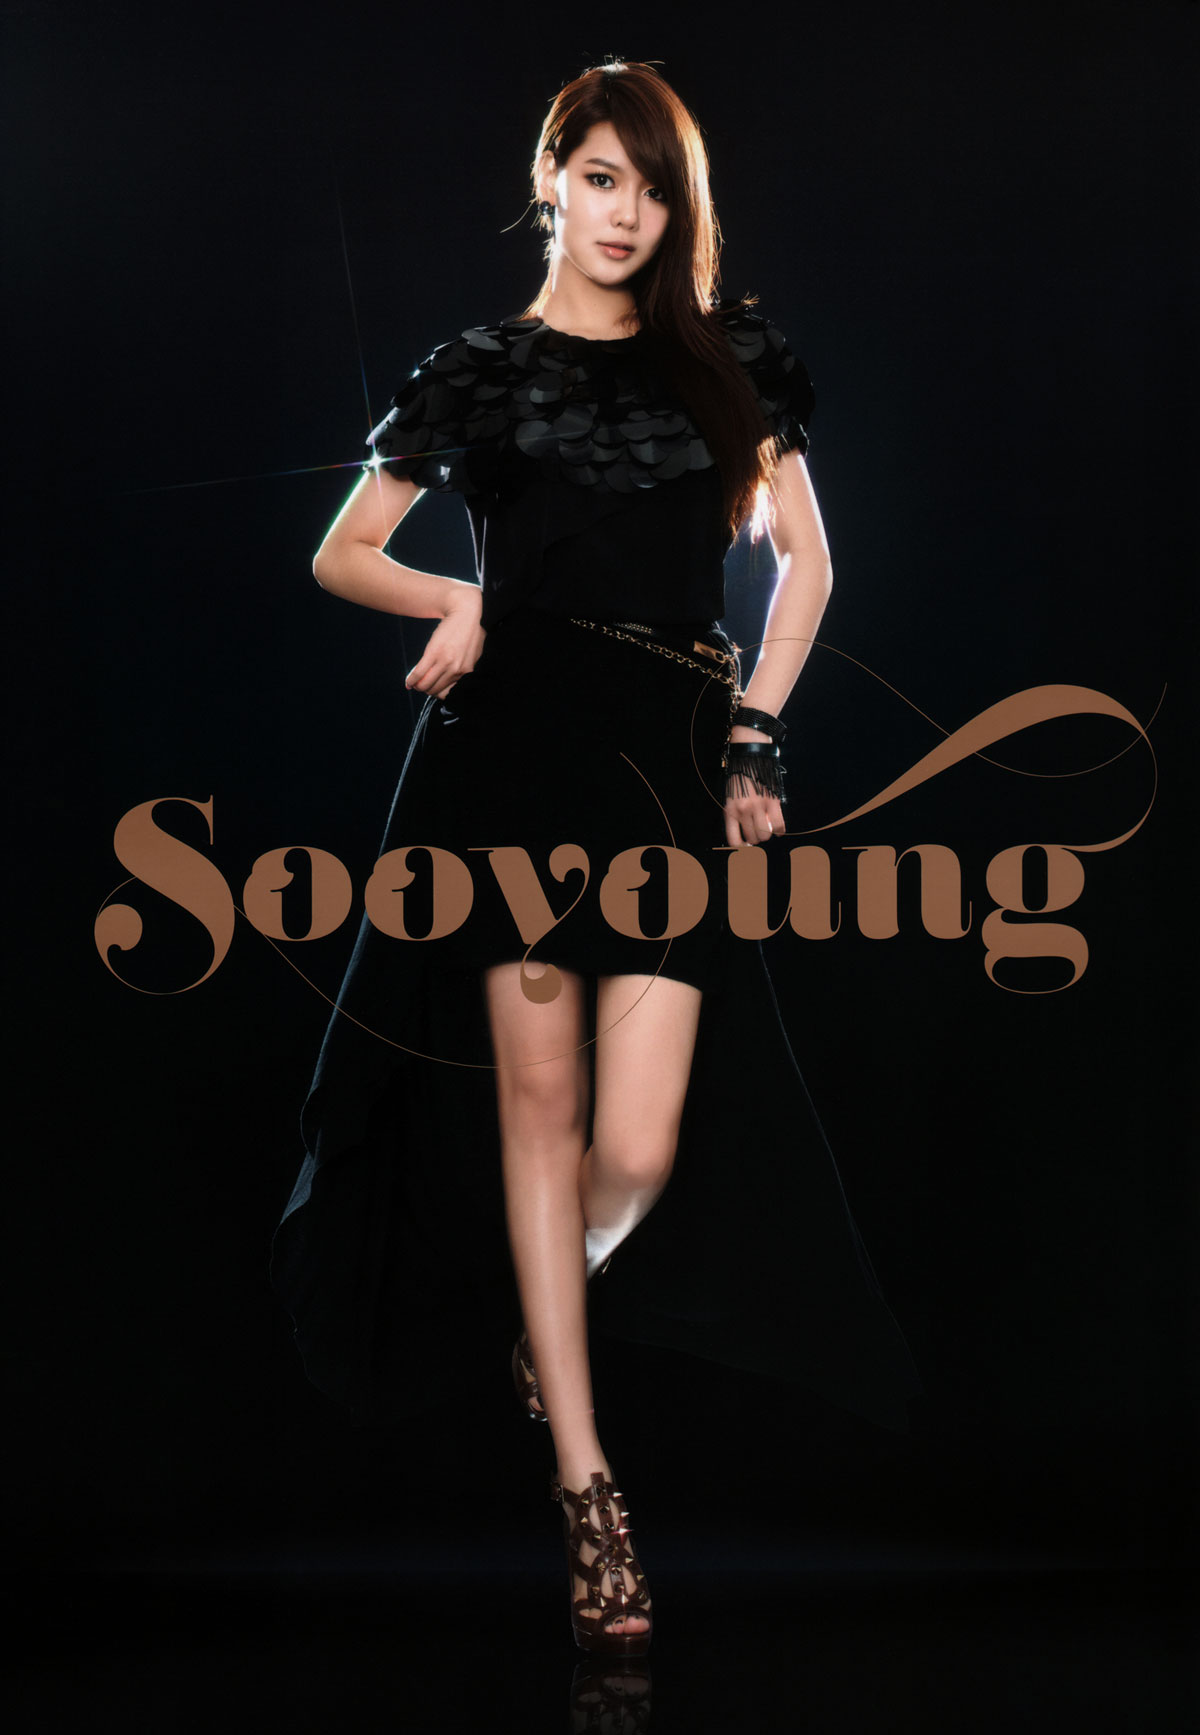 Sooyoung Girls Generation 2011 Tour brochure